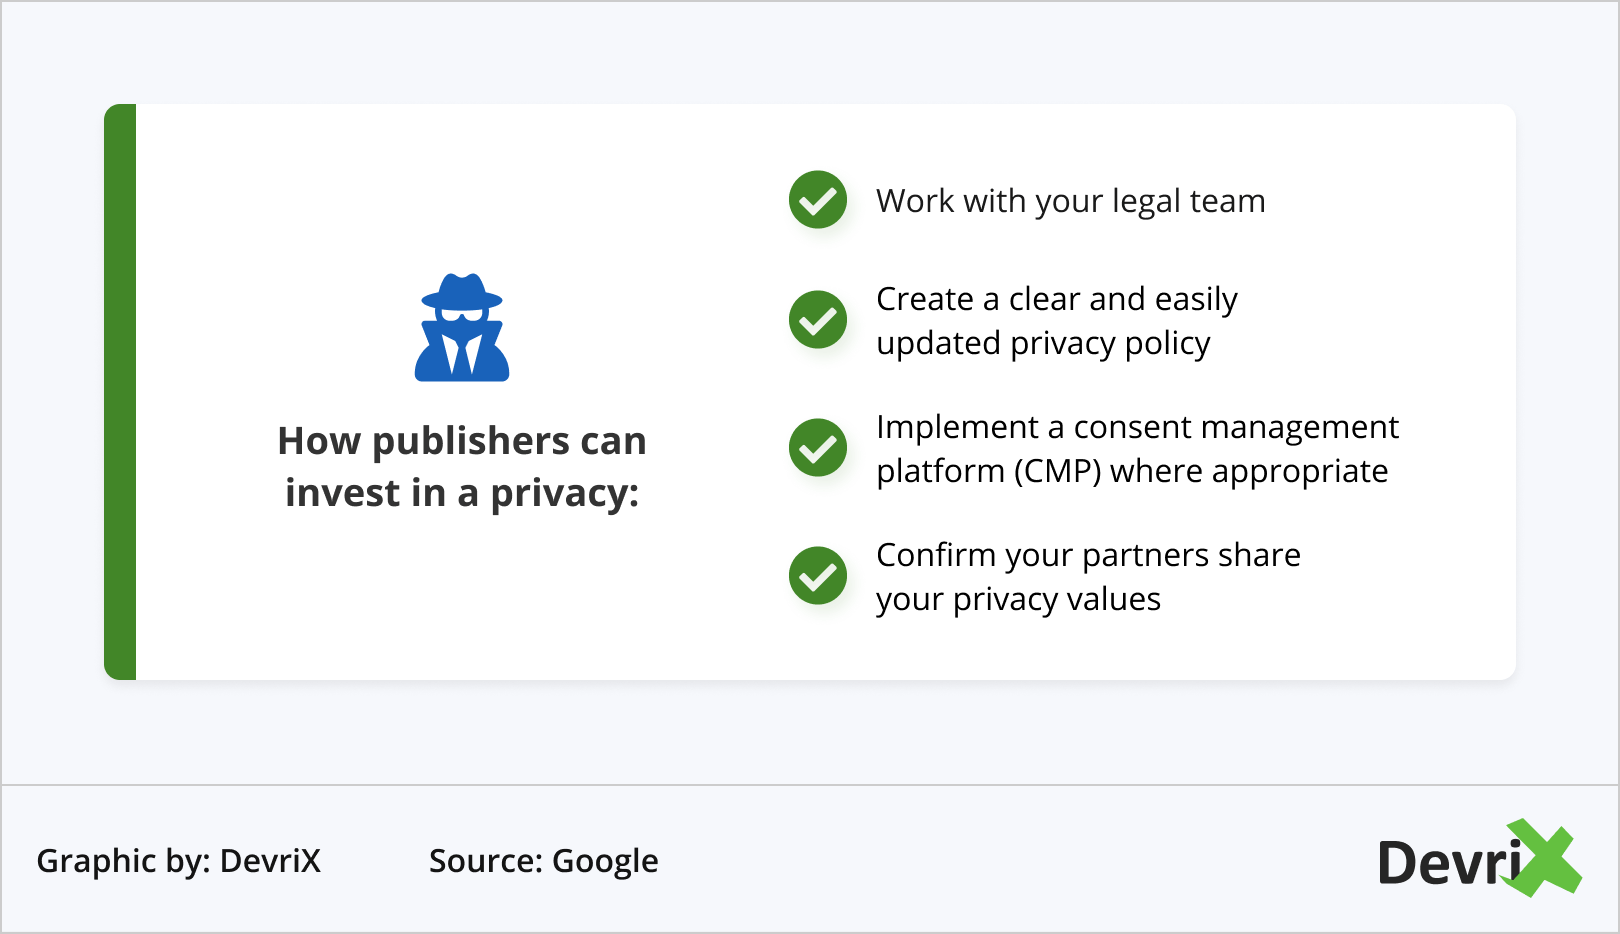 How publishers can invest in a privacy